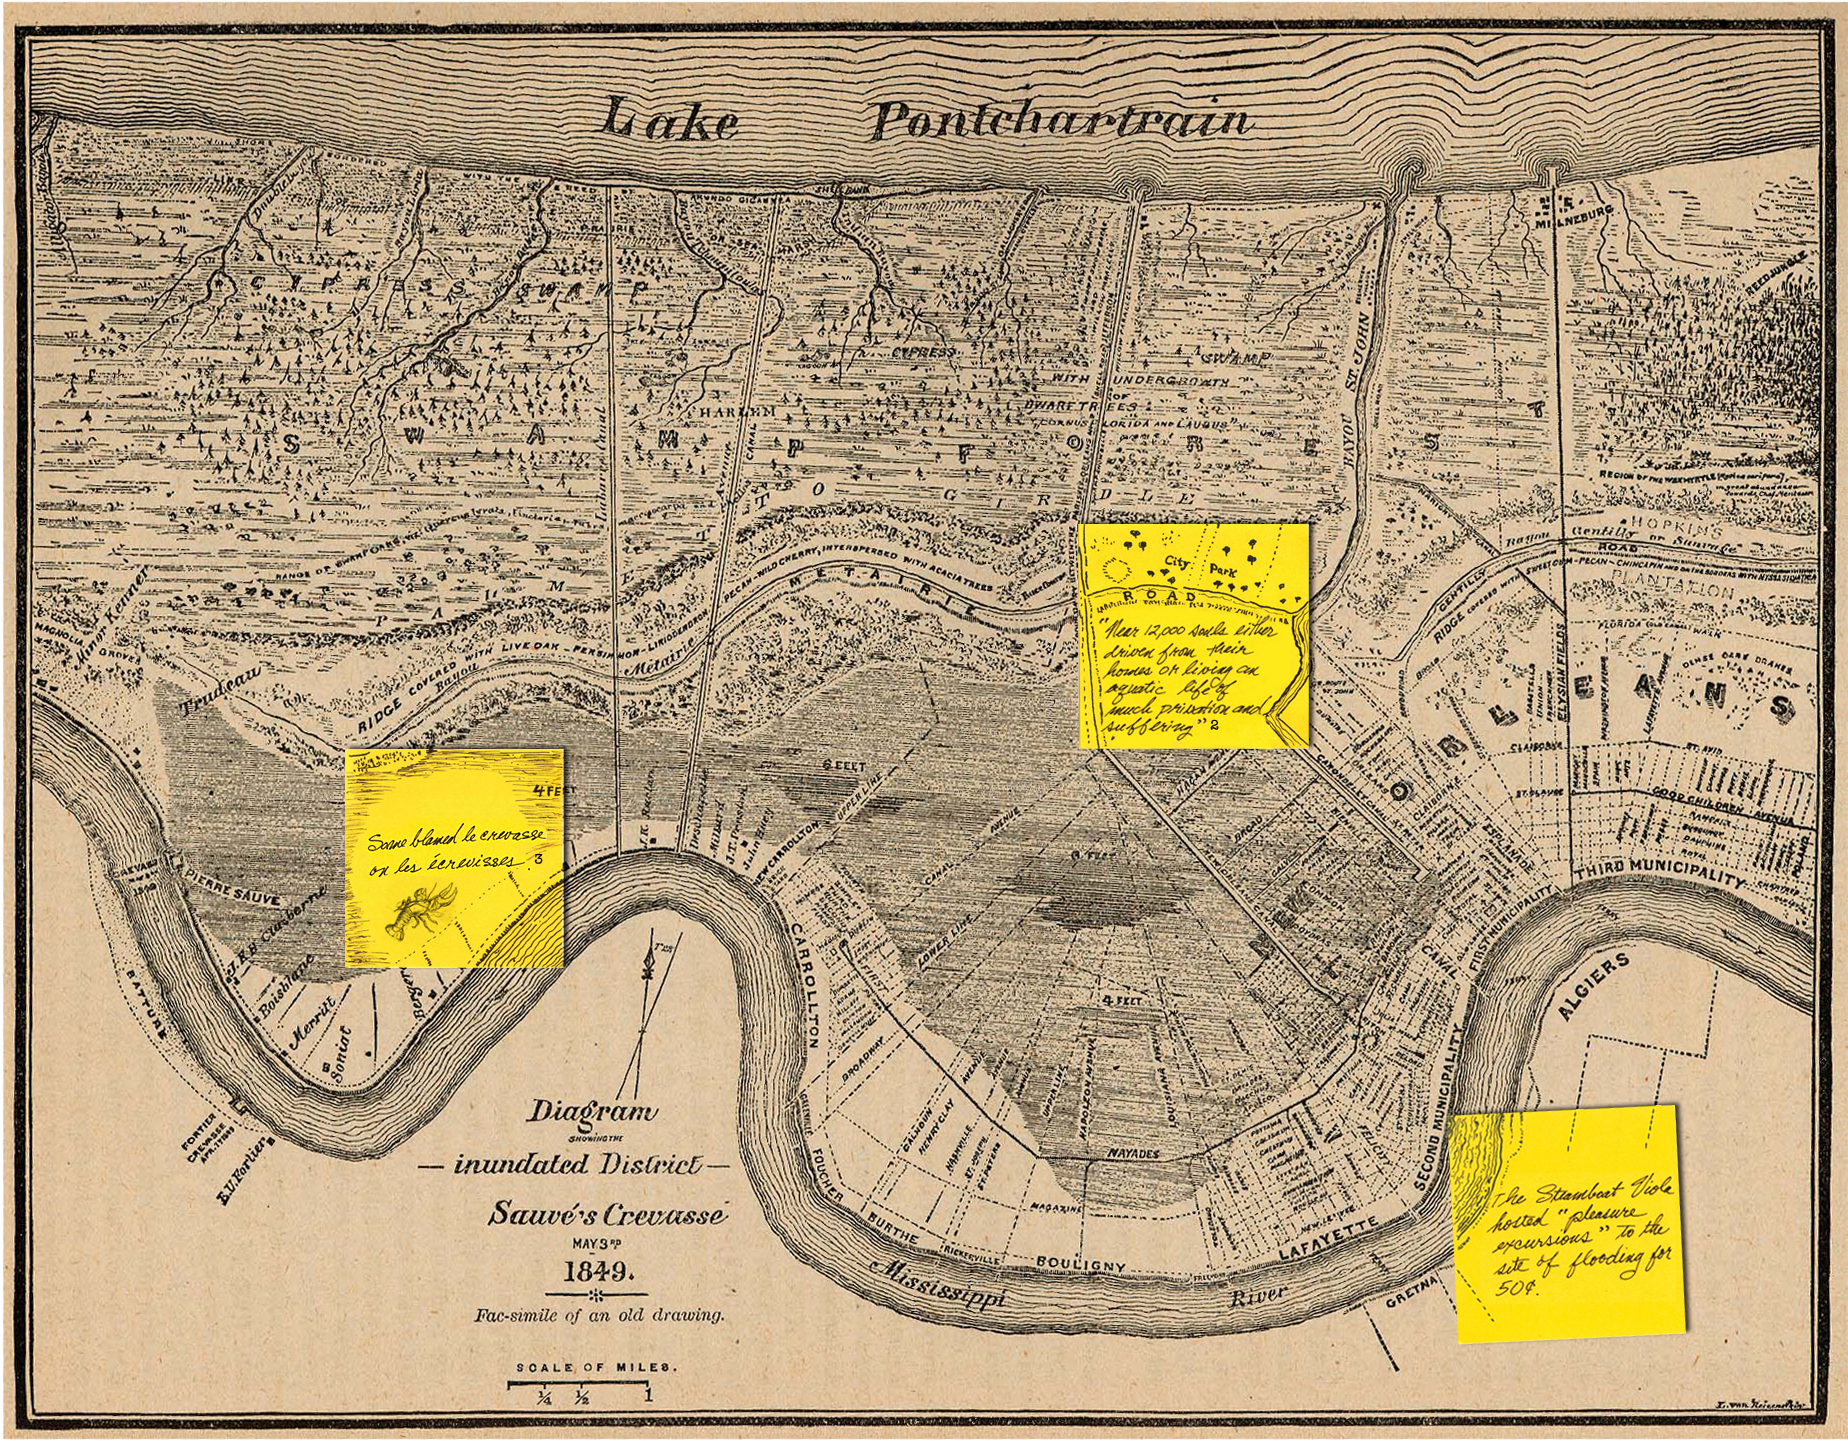 map of plantations near new orleans Plantations Near New Orleans Map لم يسبق له مثيل الصور Tier3 Xyz map of plantations near new orleans